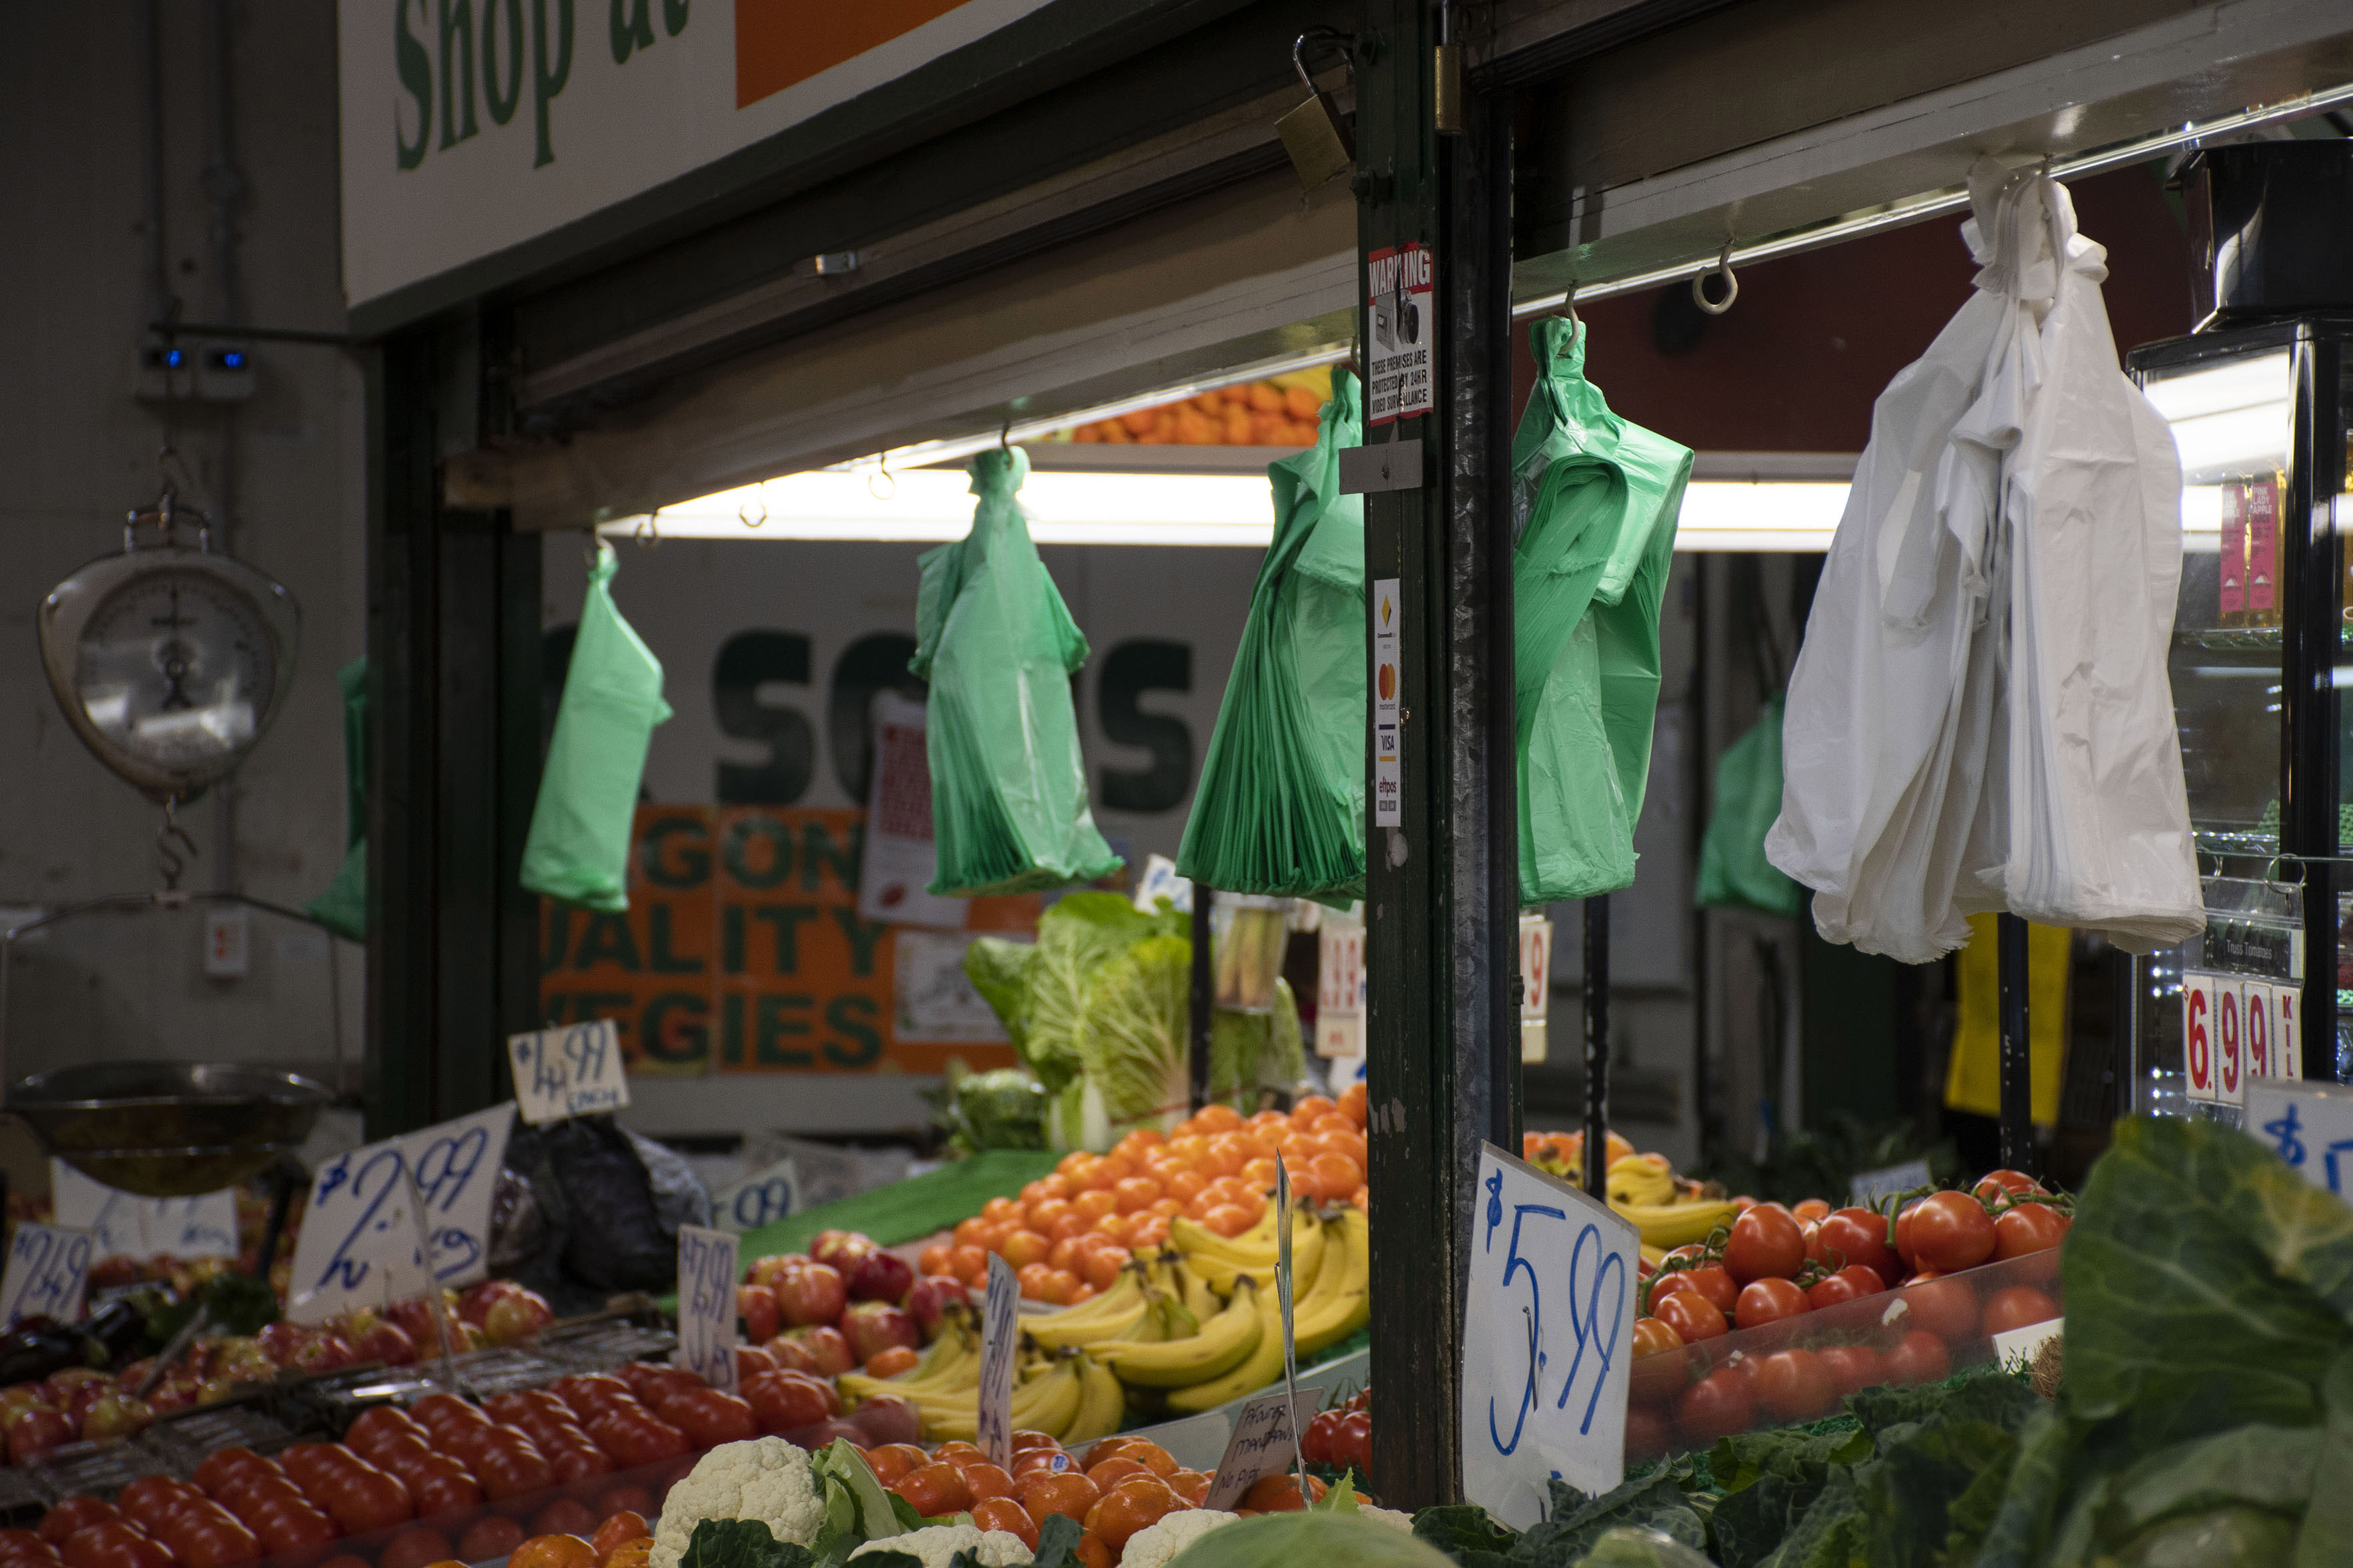 Market shoppers and vendors unfazed by Victoria's plastic bag ban